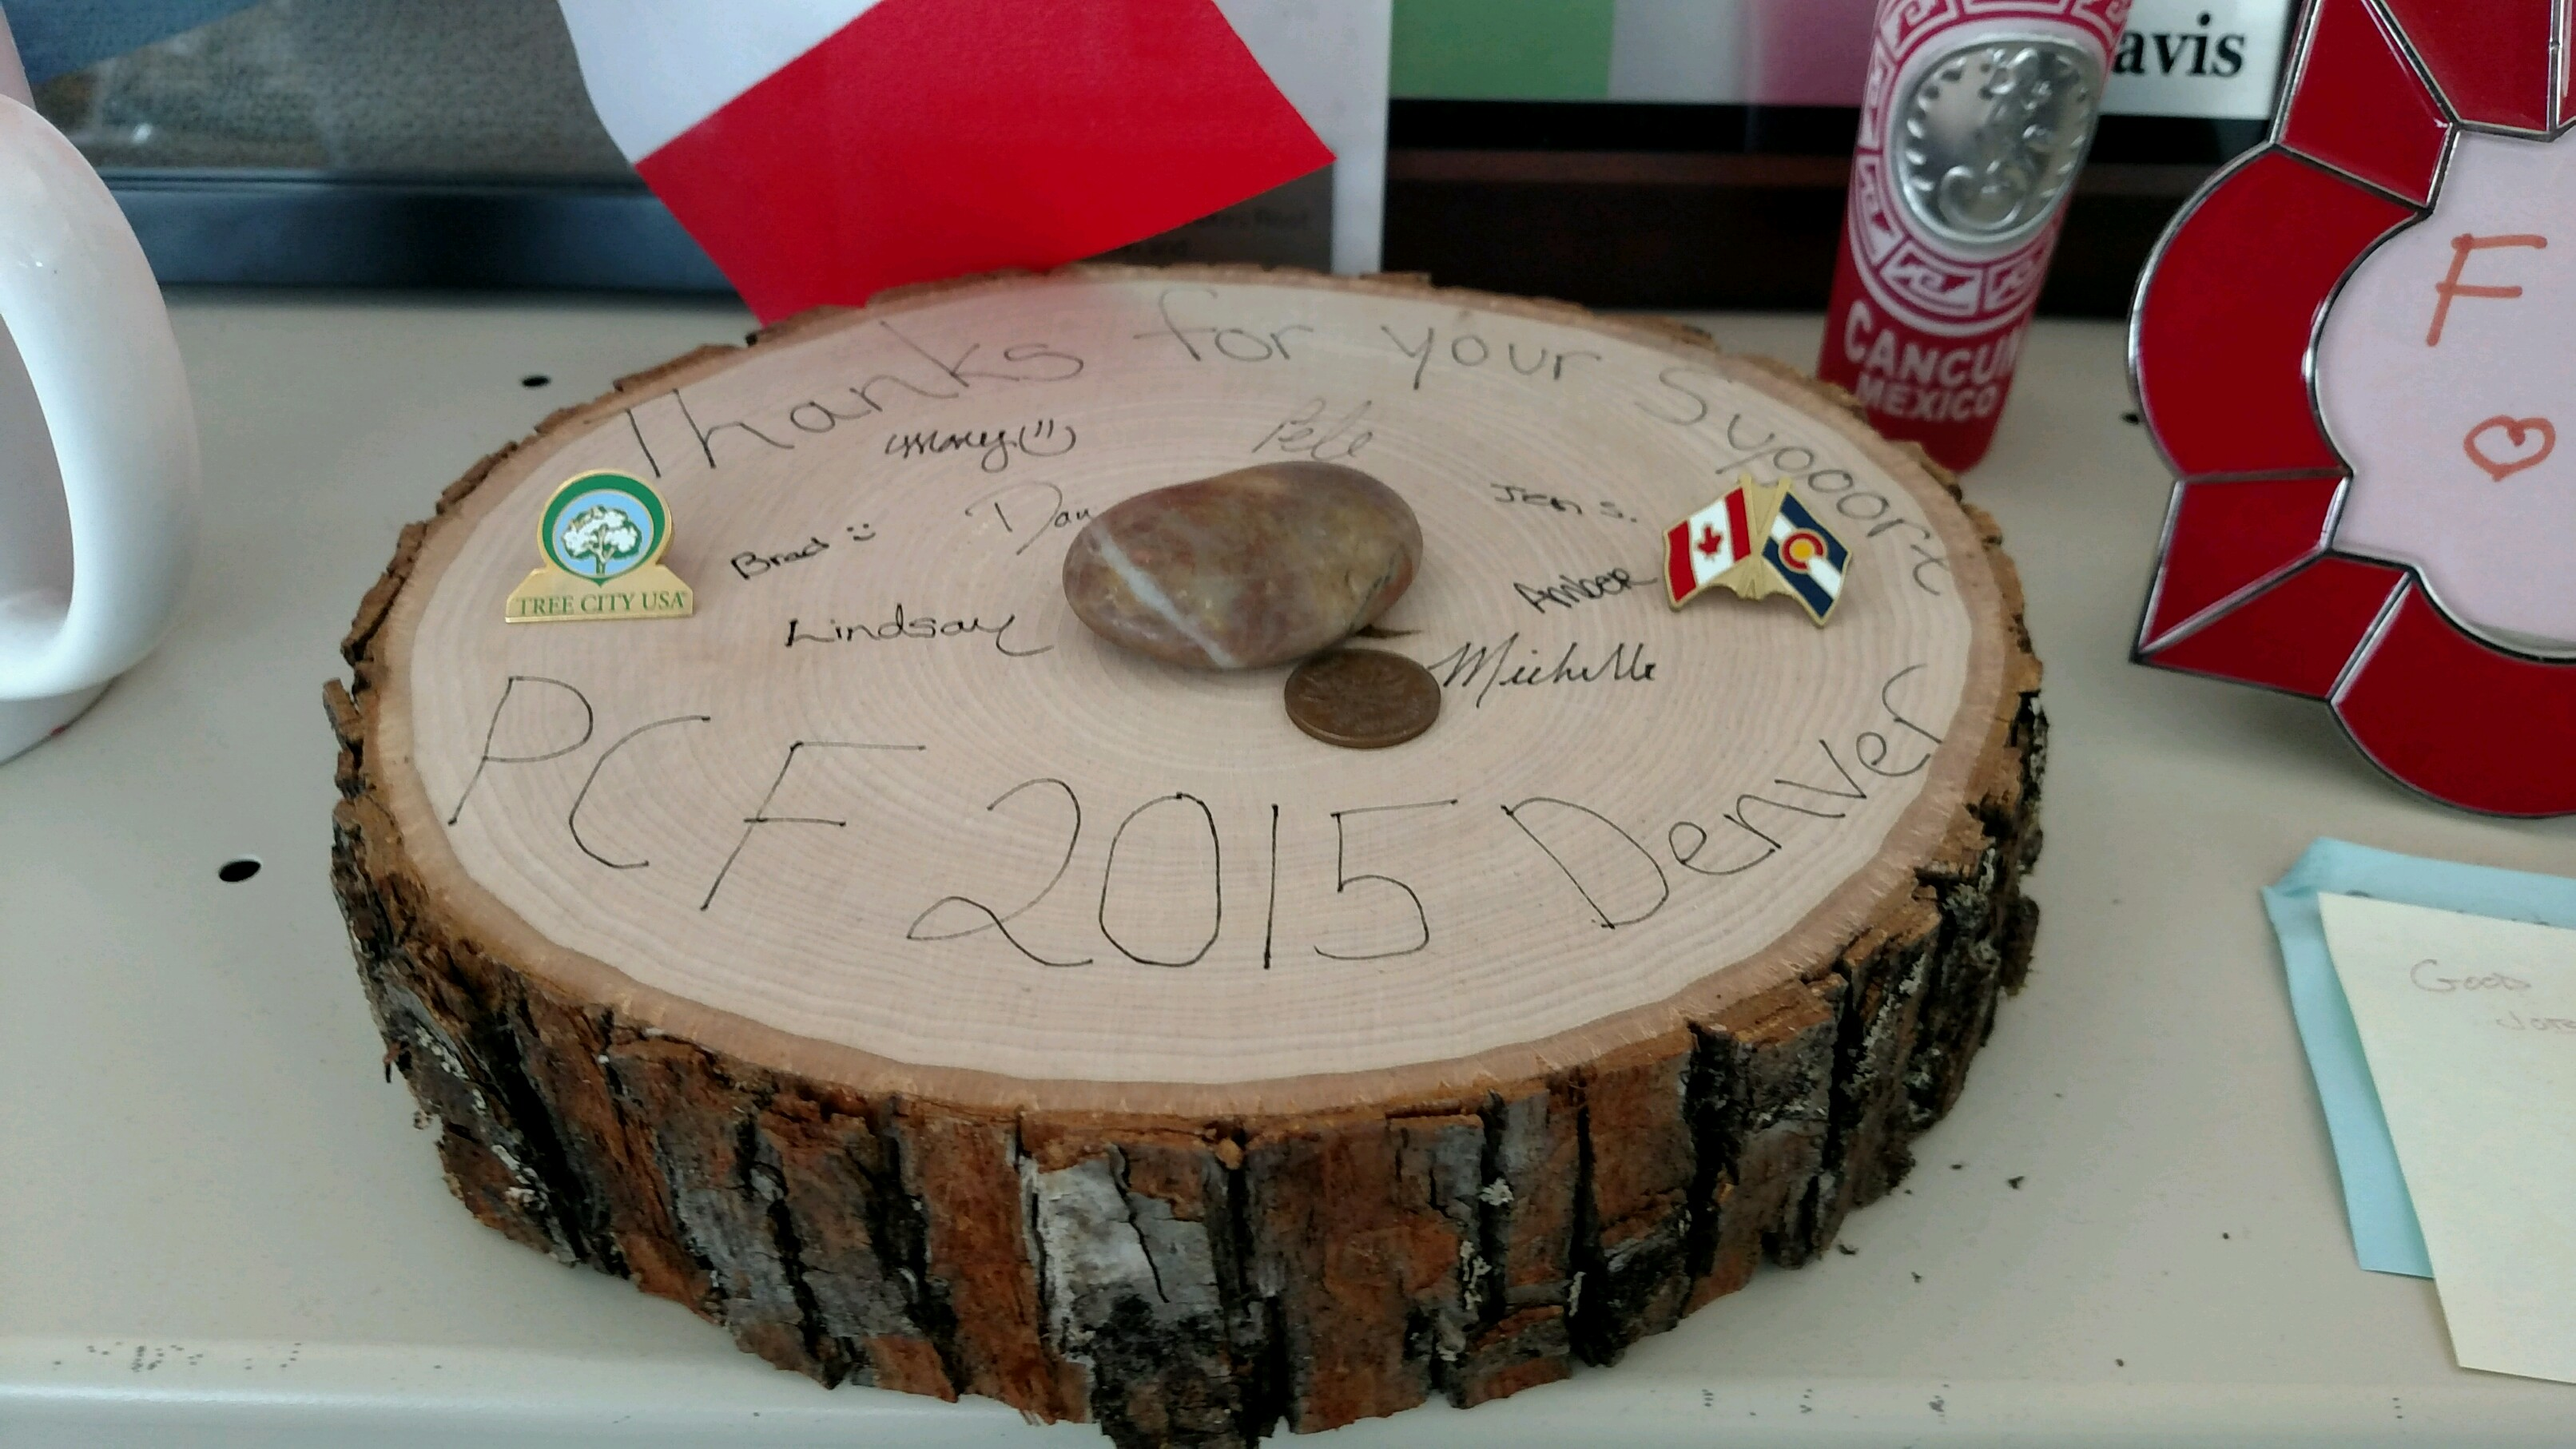 This Thank You Note Was Sent To The Denver Office Of The City Forester For Hosting The 2015 Partners In Community Forestry Conference, And Was Made From Transported Wood.